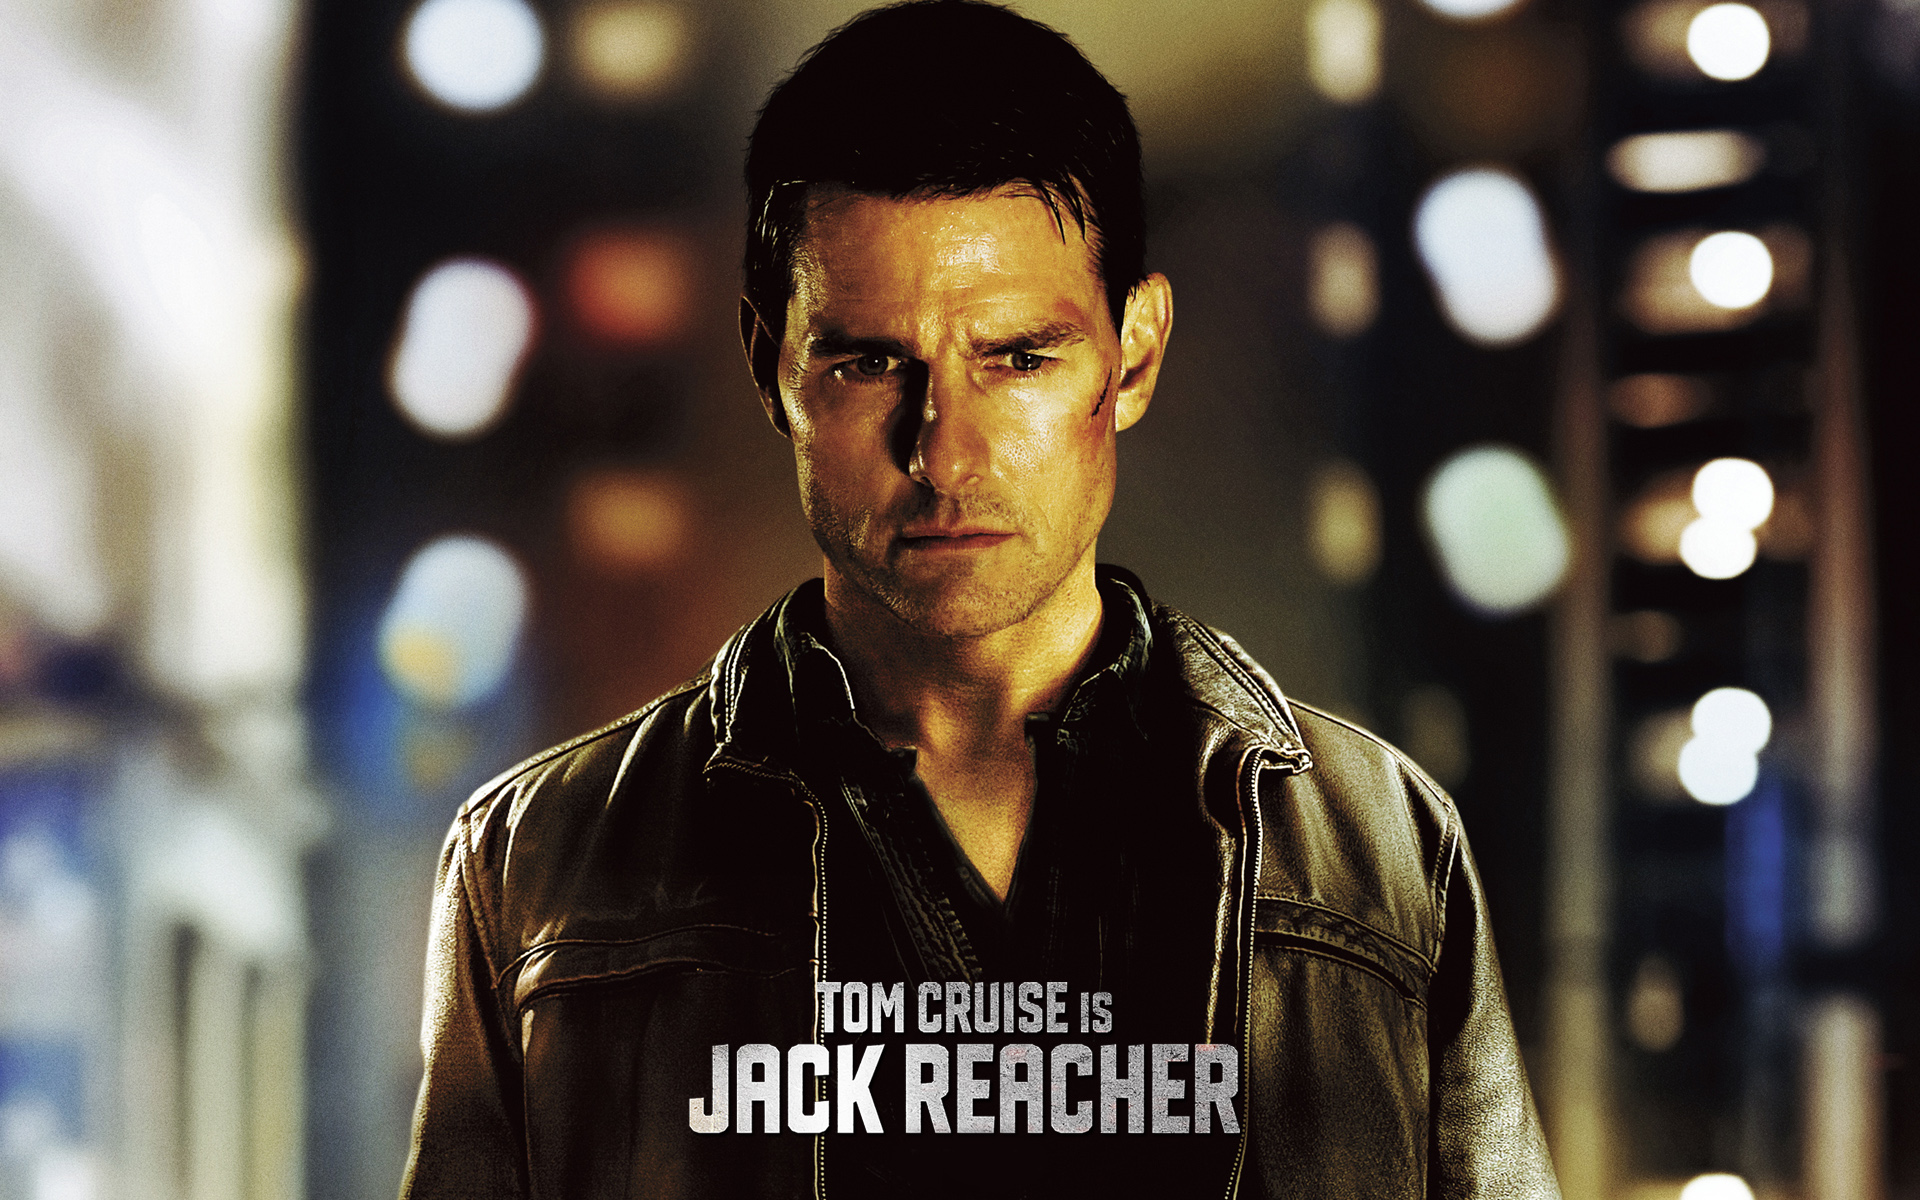 Jack Reacher – Critique du film